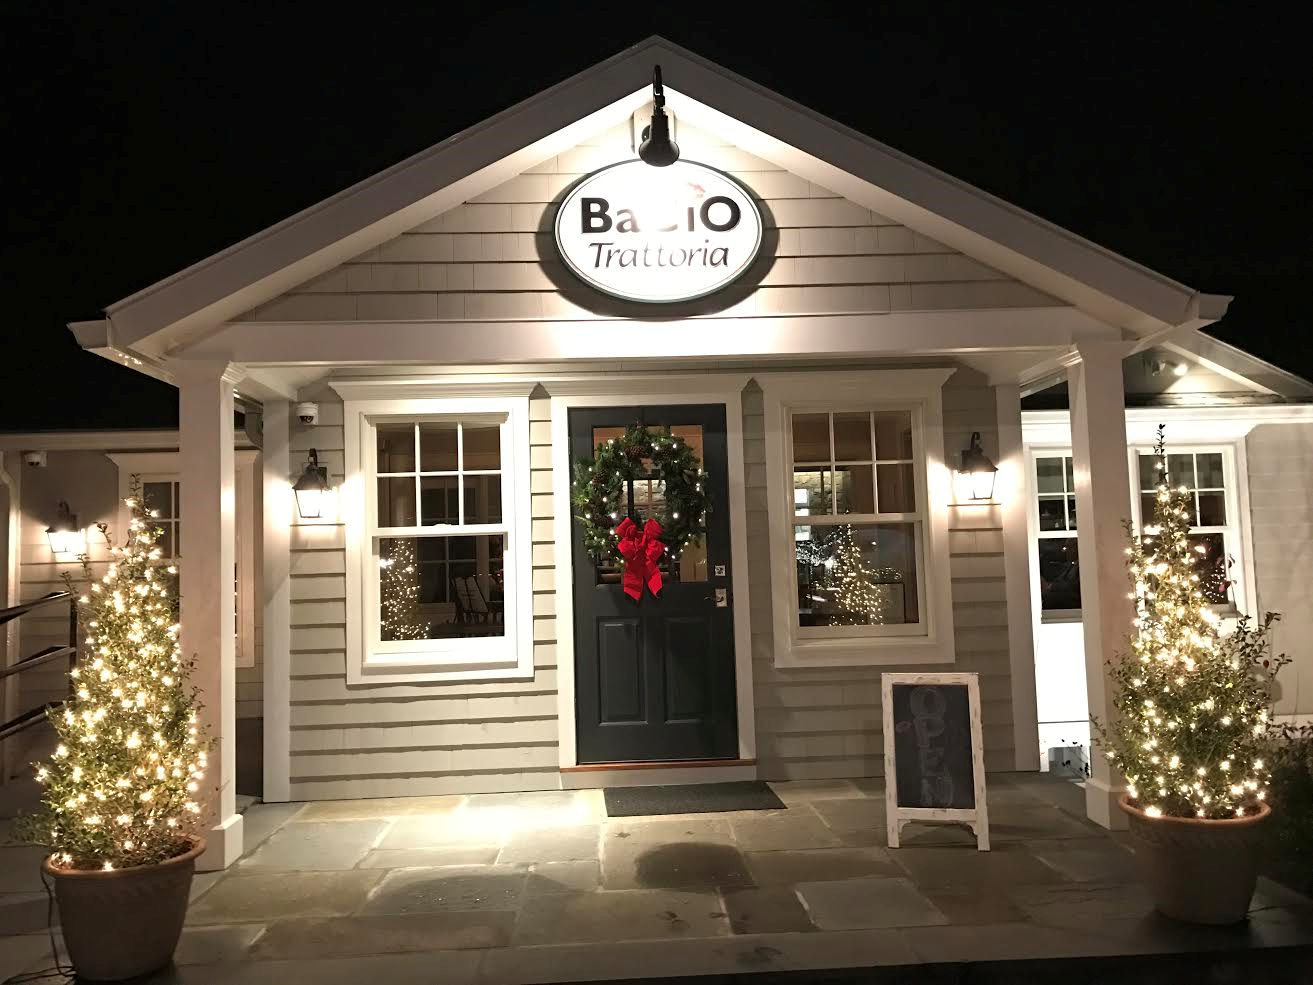 CHRISTMAS EVE  11.00 AMTO  3.00 PMCLOSED DINNER  CLOSED CHRISTMAS DAY  MONDAY DECEMBER 26DINNER ONLY  TUESDAY  TO SATURDAYOPEN LUNCH AND DINNER   CLOSED NEW YEARS DAY    WE ARE TAKING RESERVATIONS FOR NEW YEARS EVE